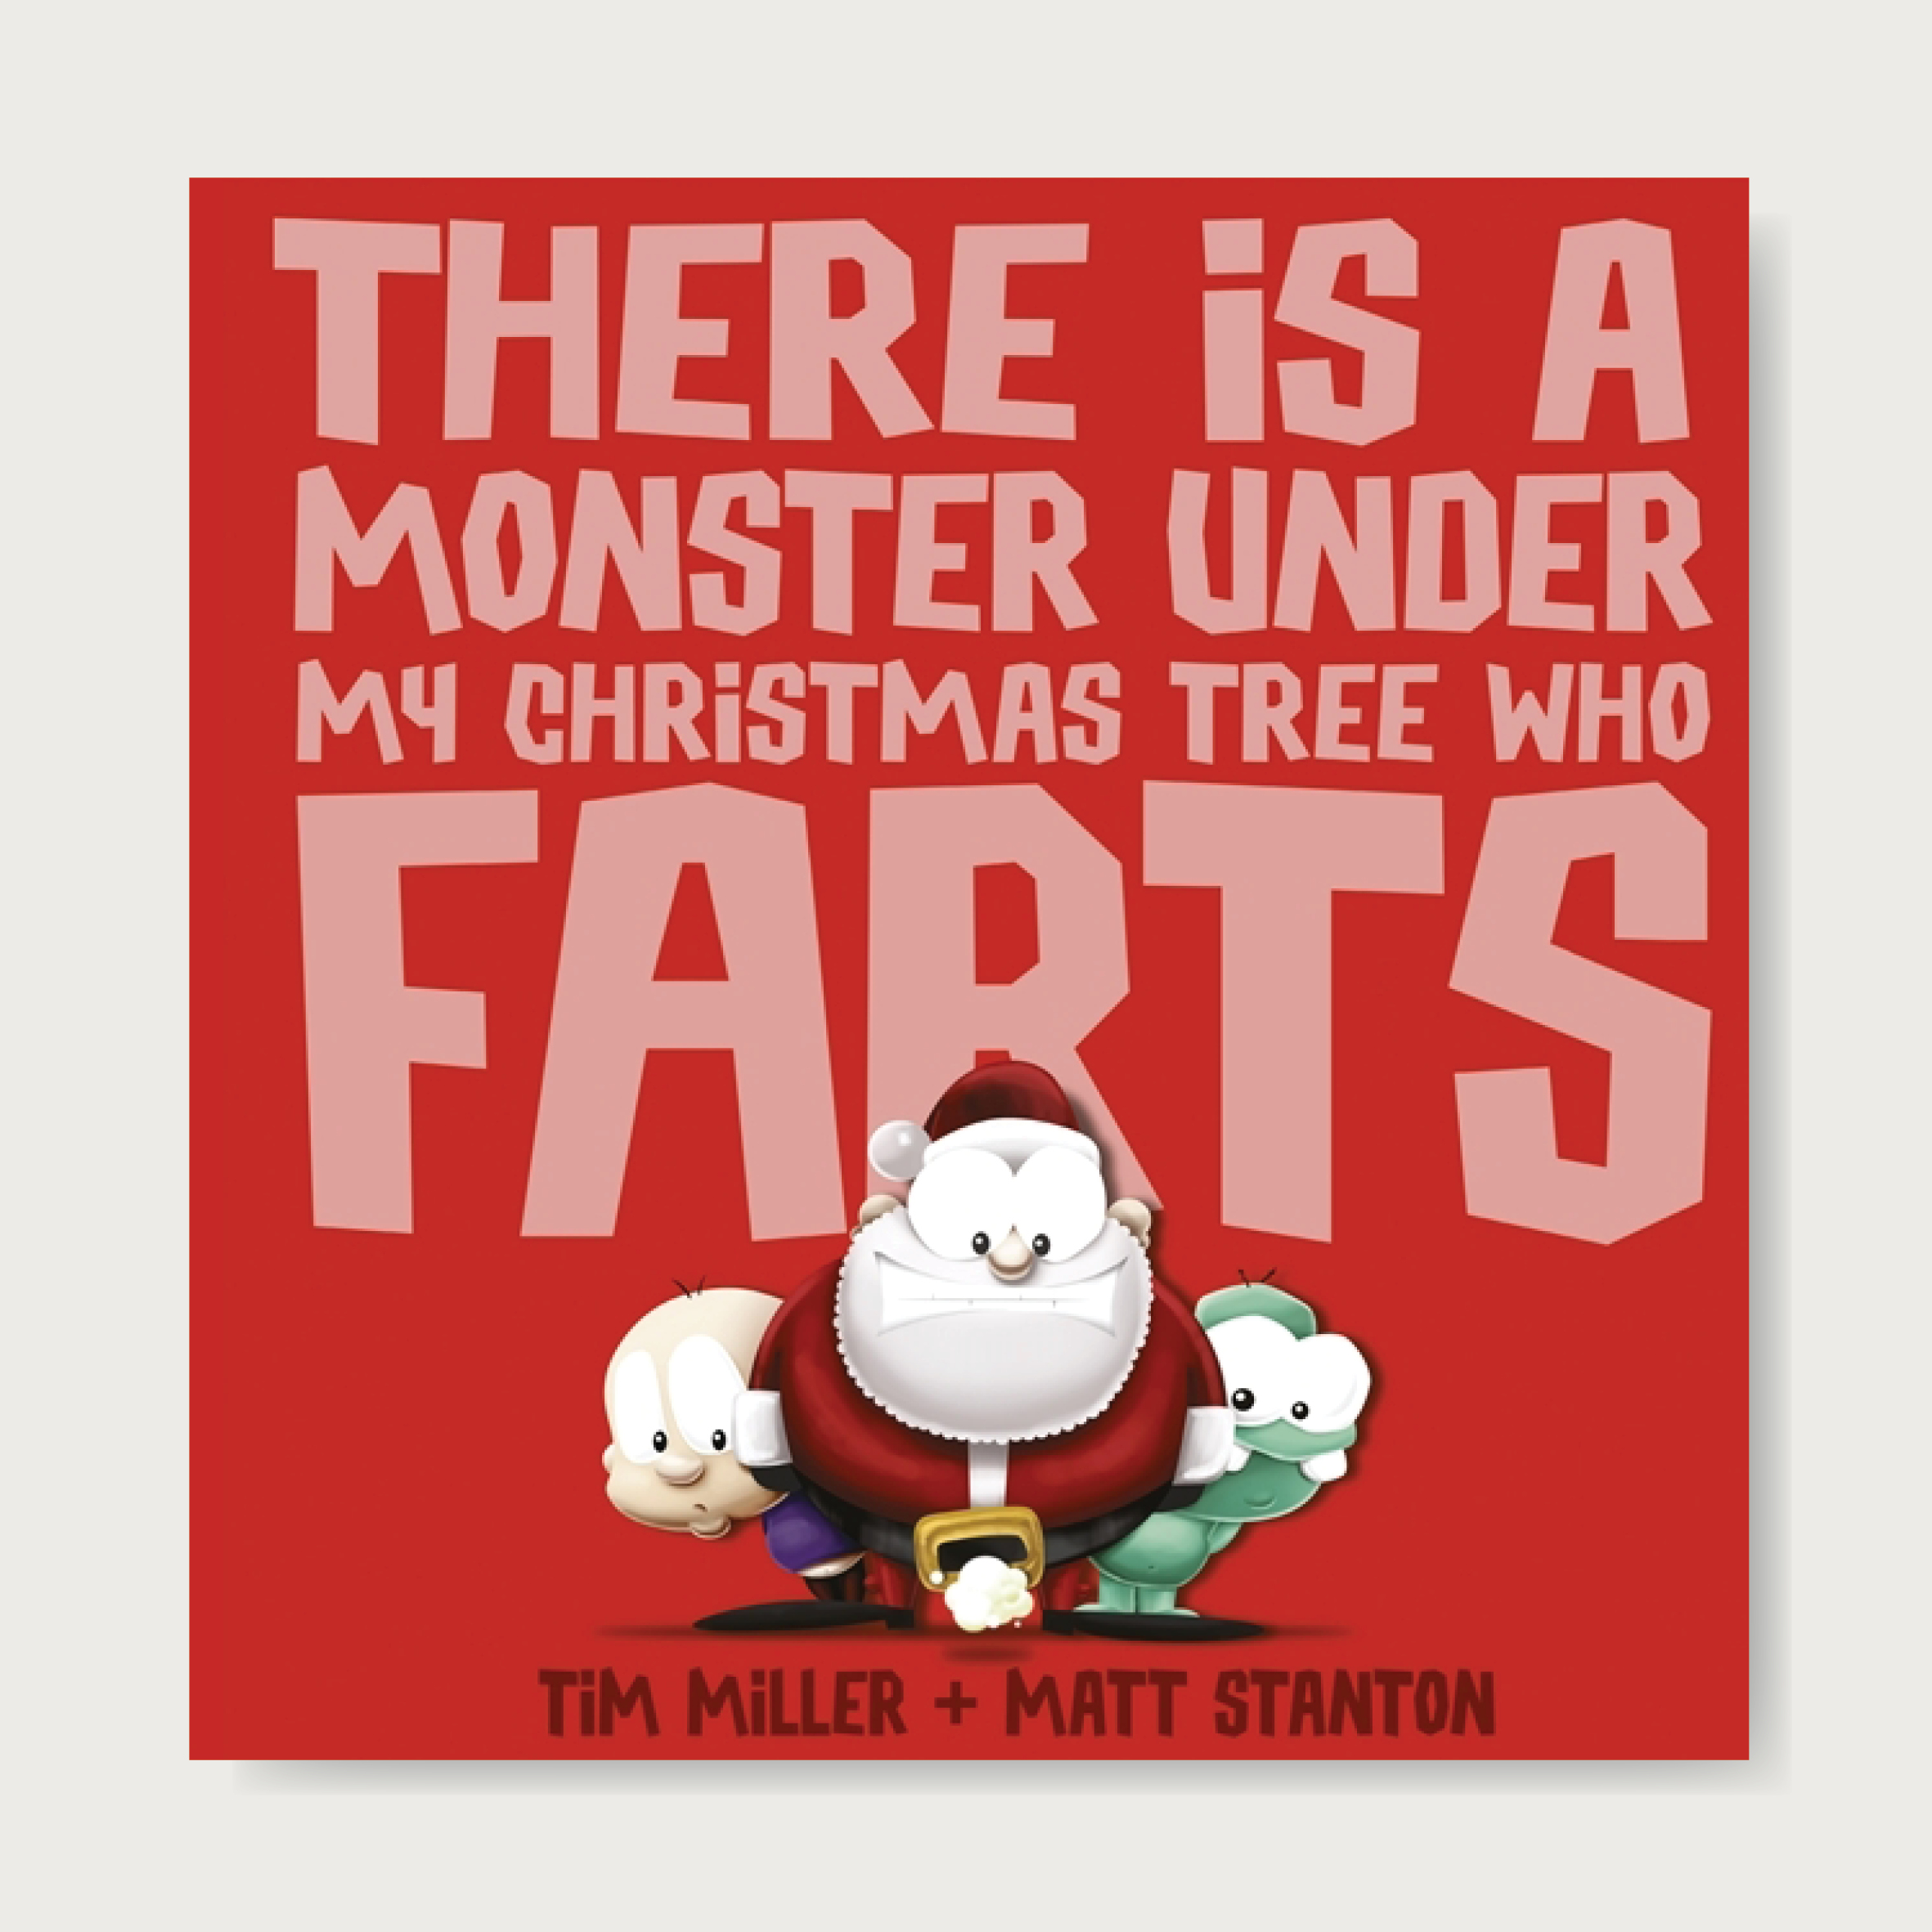 The sequel to the hilarious There is a Monster Under my Bed who Farts. How much trouble can one little monster cause at Christmas time? From the cheeky duo who brought you   There is a Monster Under my Bed who Farts and The Pirate Who Had to Pee comes a book that is perfect for naughty boys this Christmas. The Fart Monster is back and he's tootier than ever! It's Christmas, and Fart Monster is up to his old stinky tricks ... Will the boy get the blame this time? Or will he be able to convince Santa to keep him off the naughty list? Ages: 2+